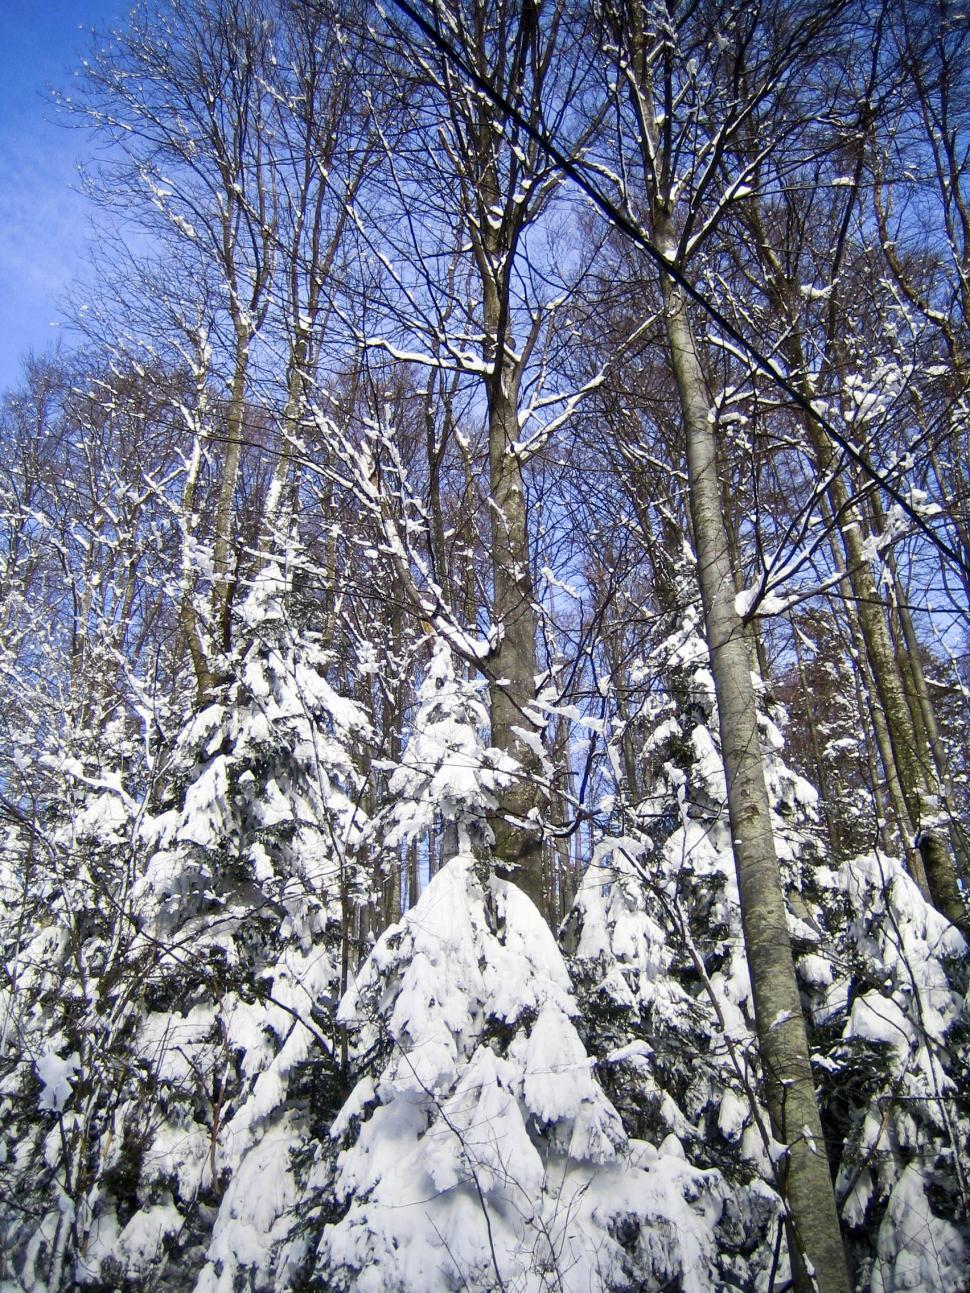 Download Free Stock HD Photo of snow on trees Online